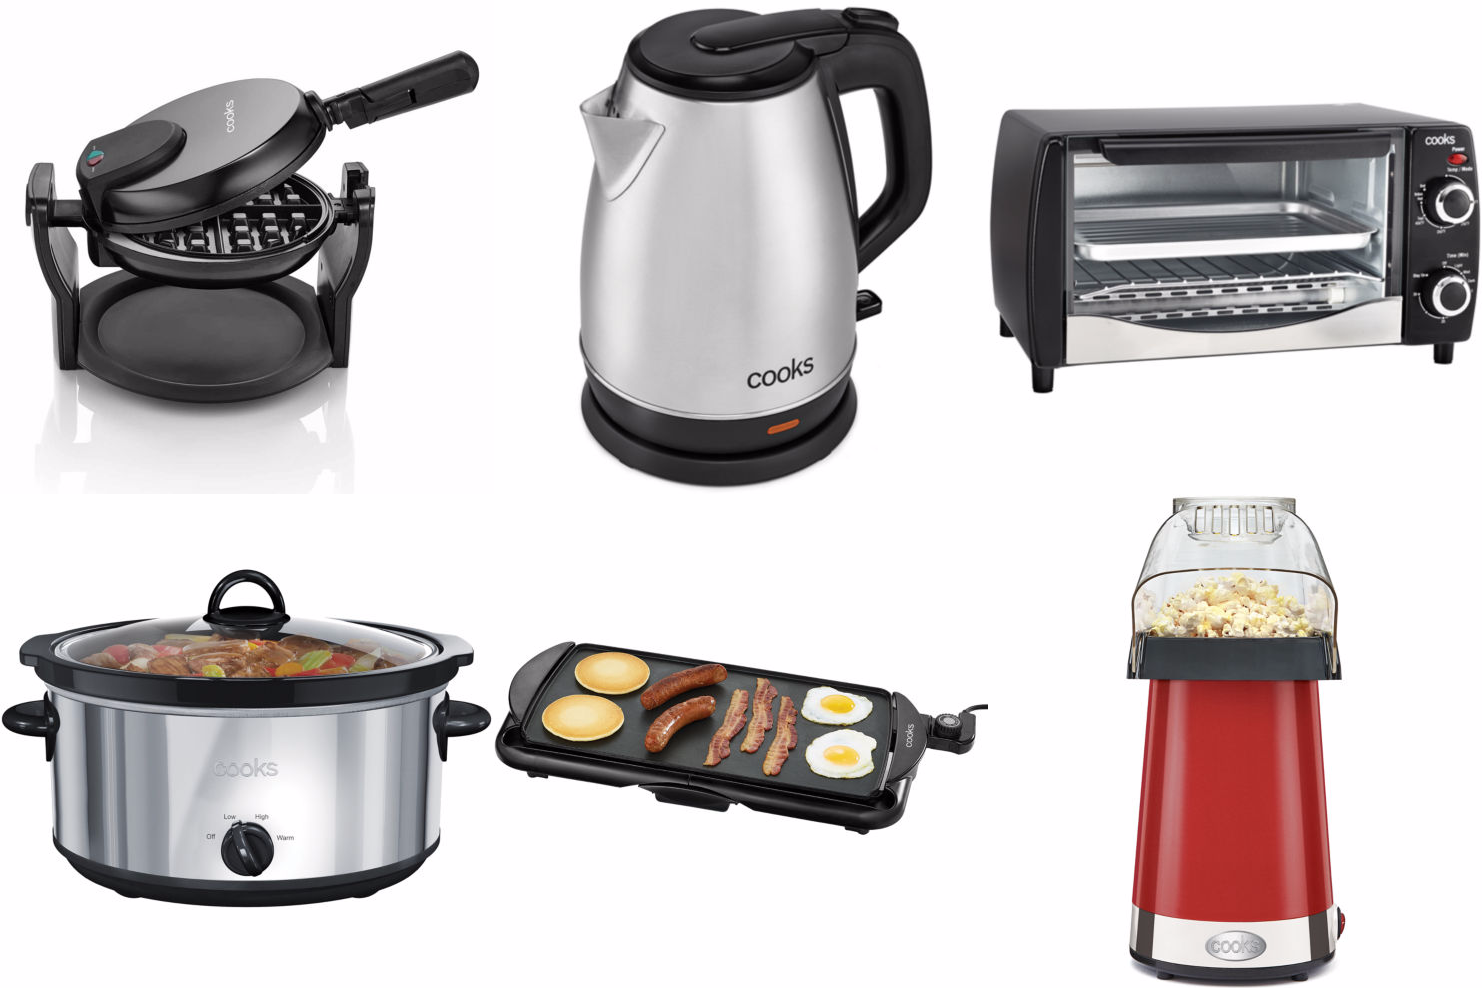 Merveilleux JcPenney: $7.99 After $12 Rebate Cooks Small Kitchen Appliances!